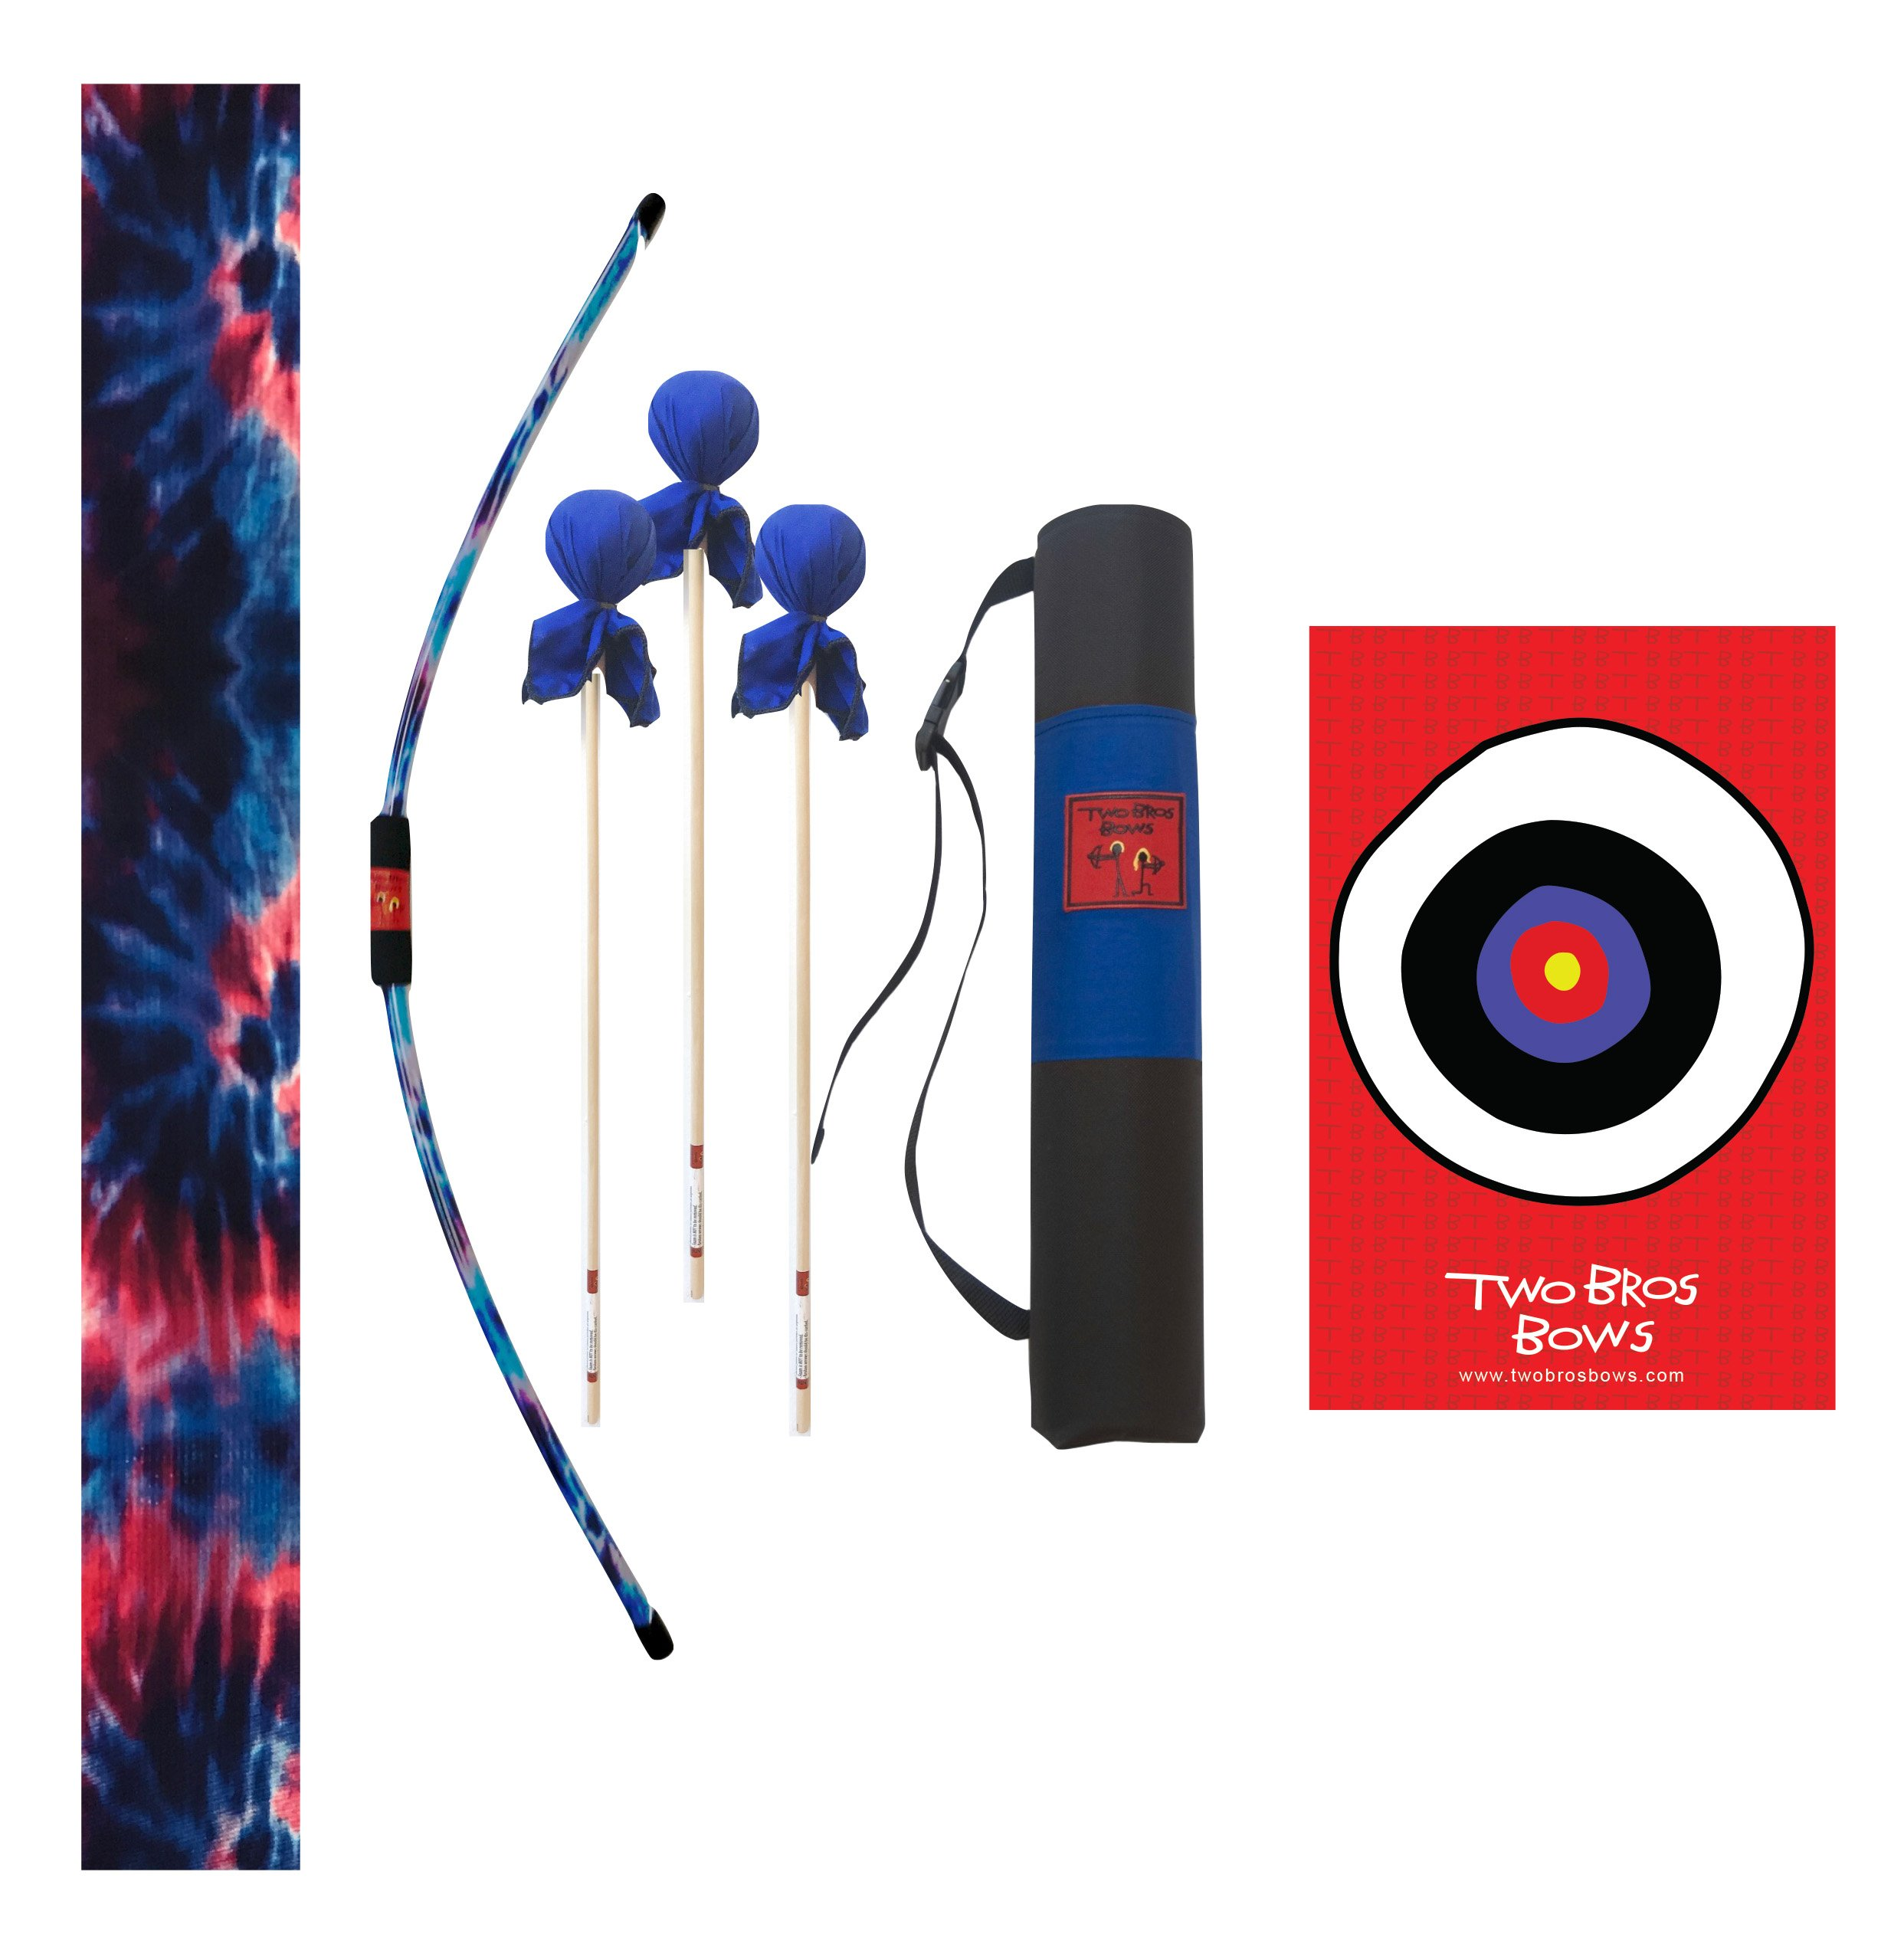 Two Bros Bows Blue Tie-Dye Archery Combo Set by Two Bros Bows, LLC